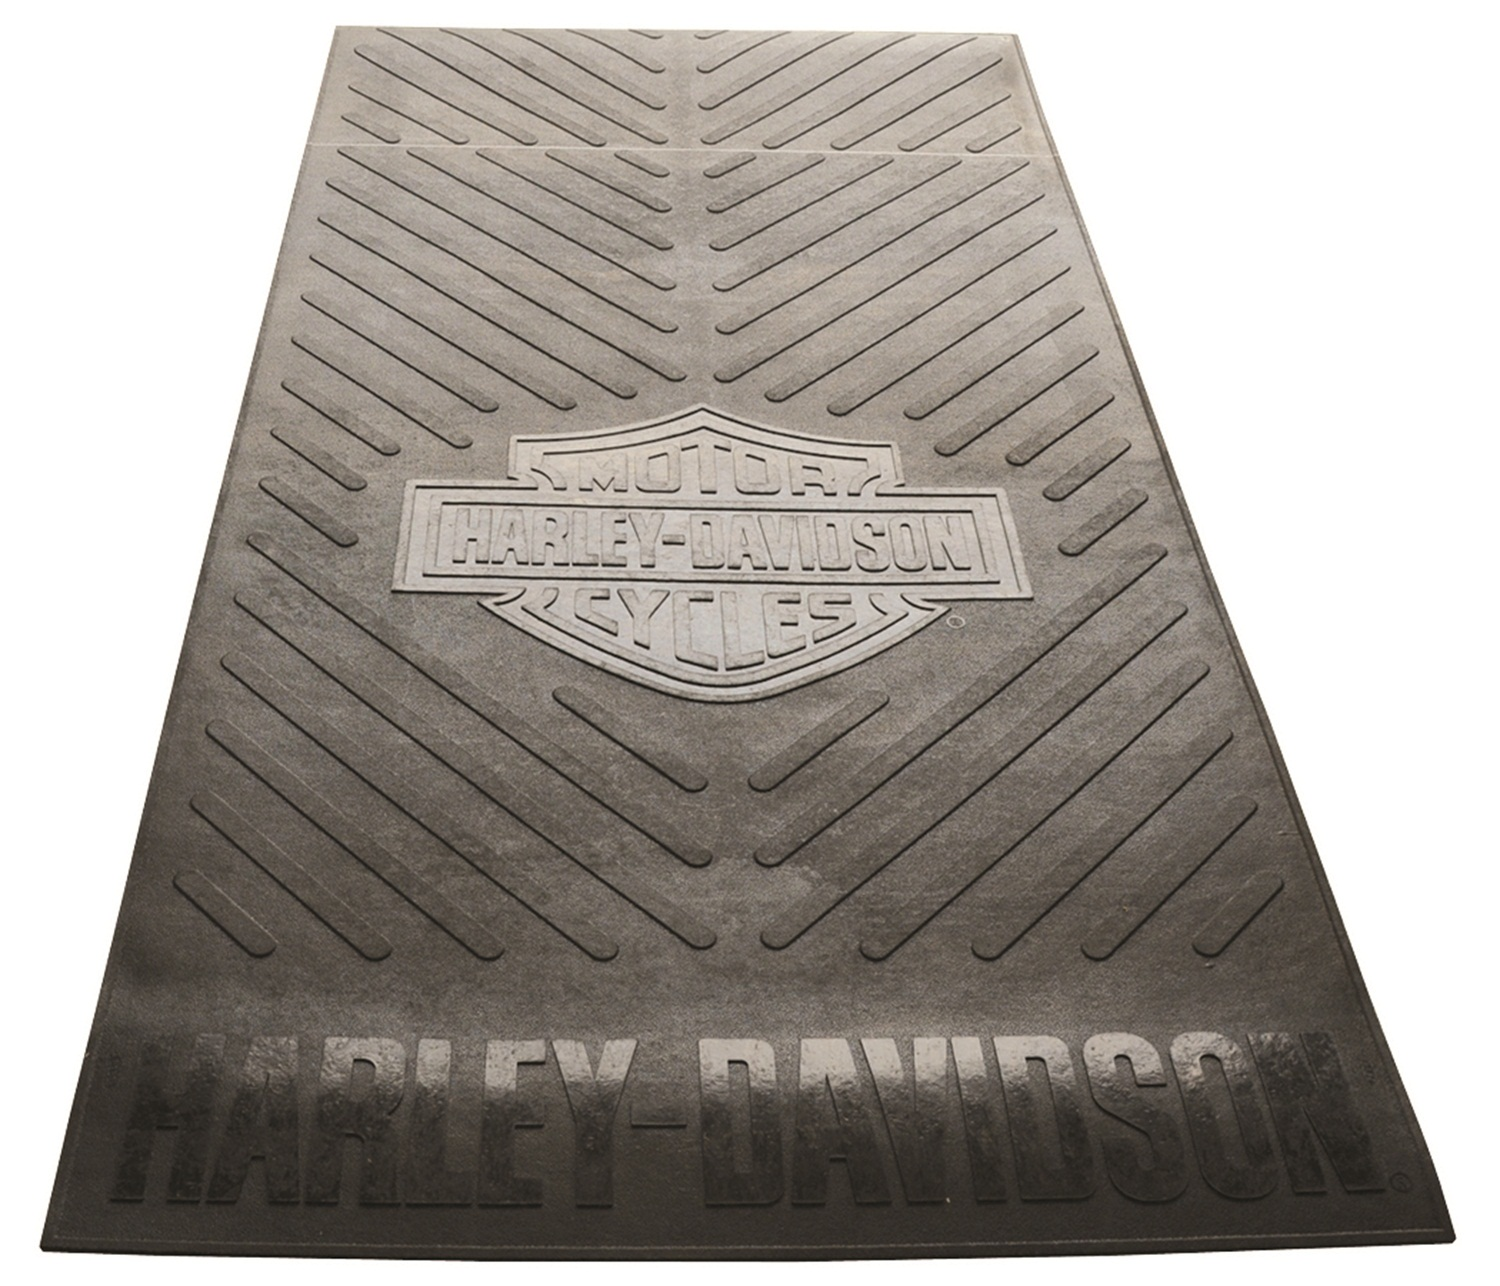 harley davidson bed mat  skid mat universal - 4 ft  x 8 ft  - retail box